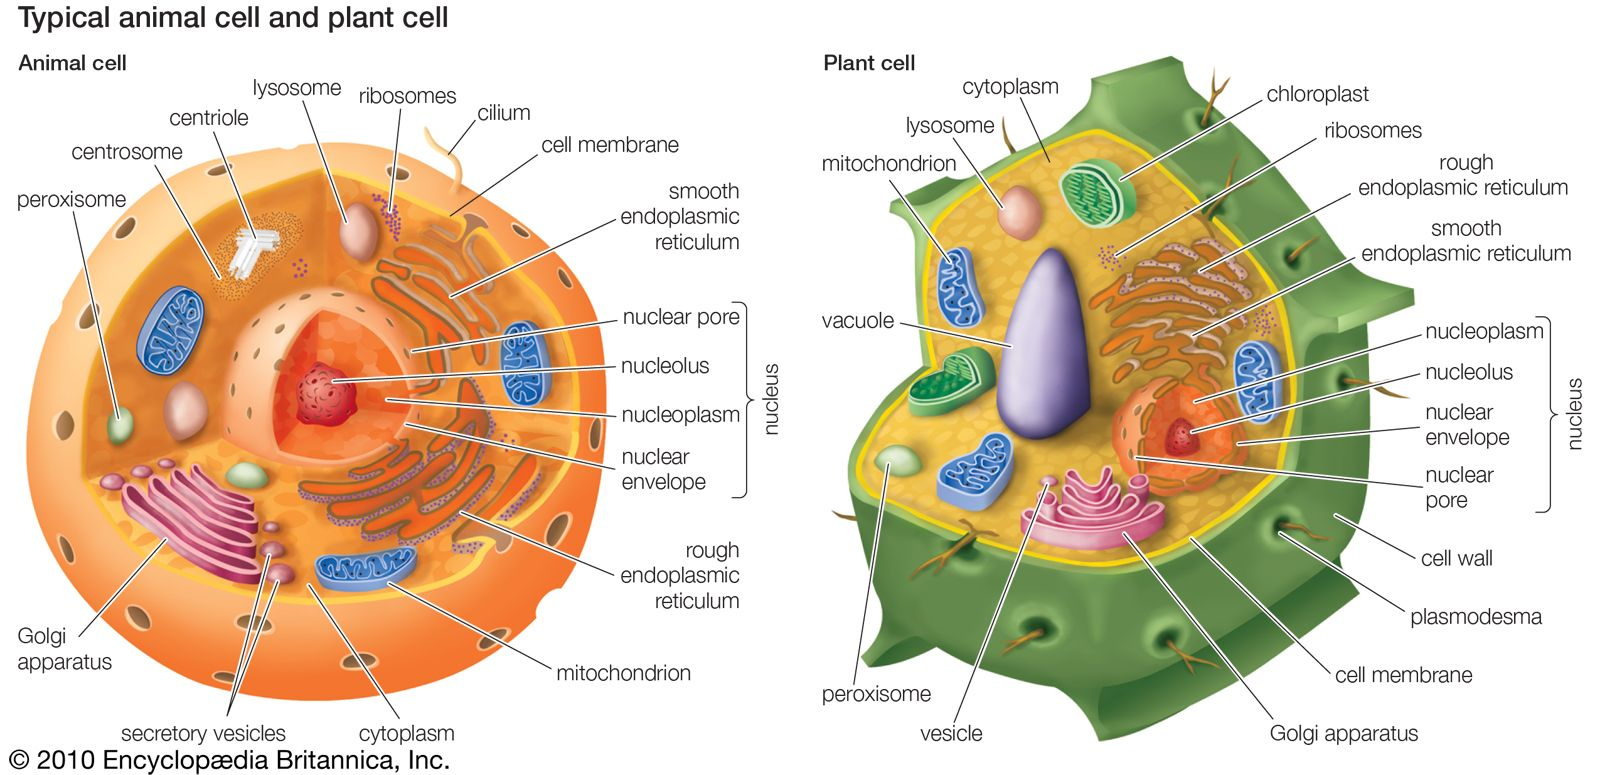 hight resolution of animal and plant cells world of sciencecraft achievements 6th plant cell diagram labeled animal cell diagram labeled human cell